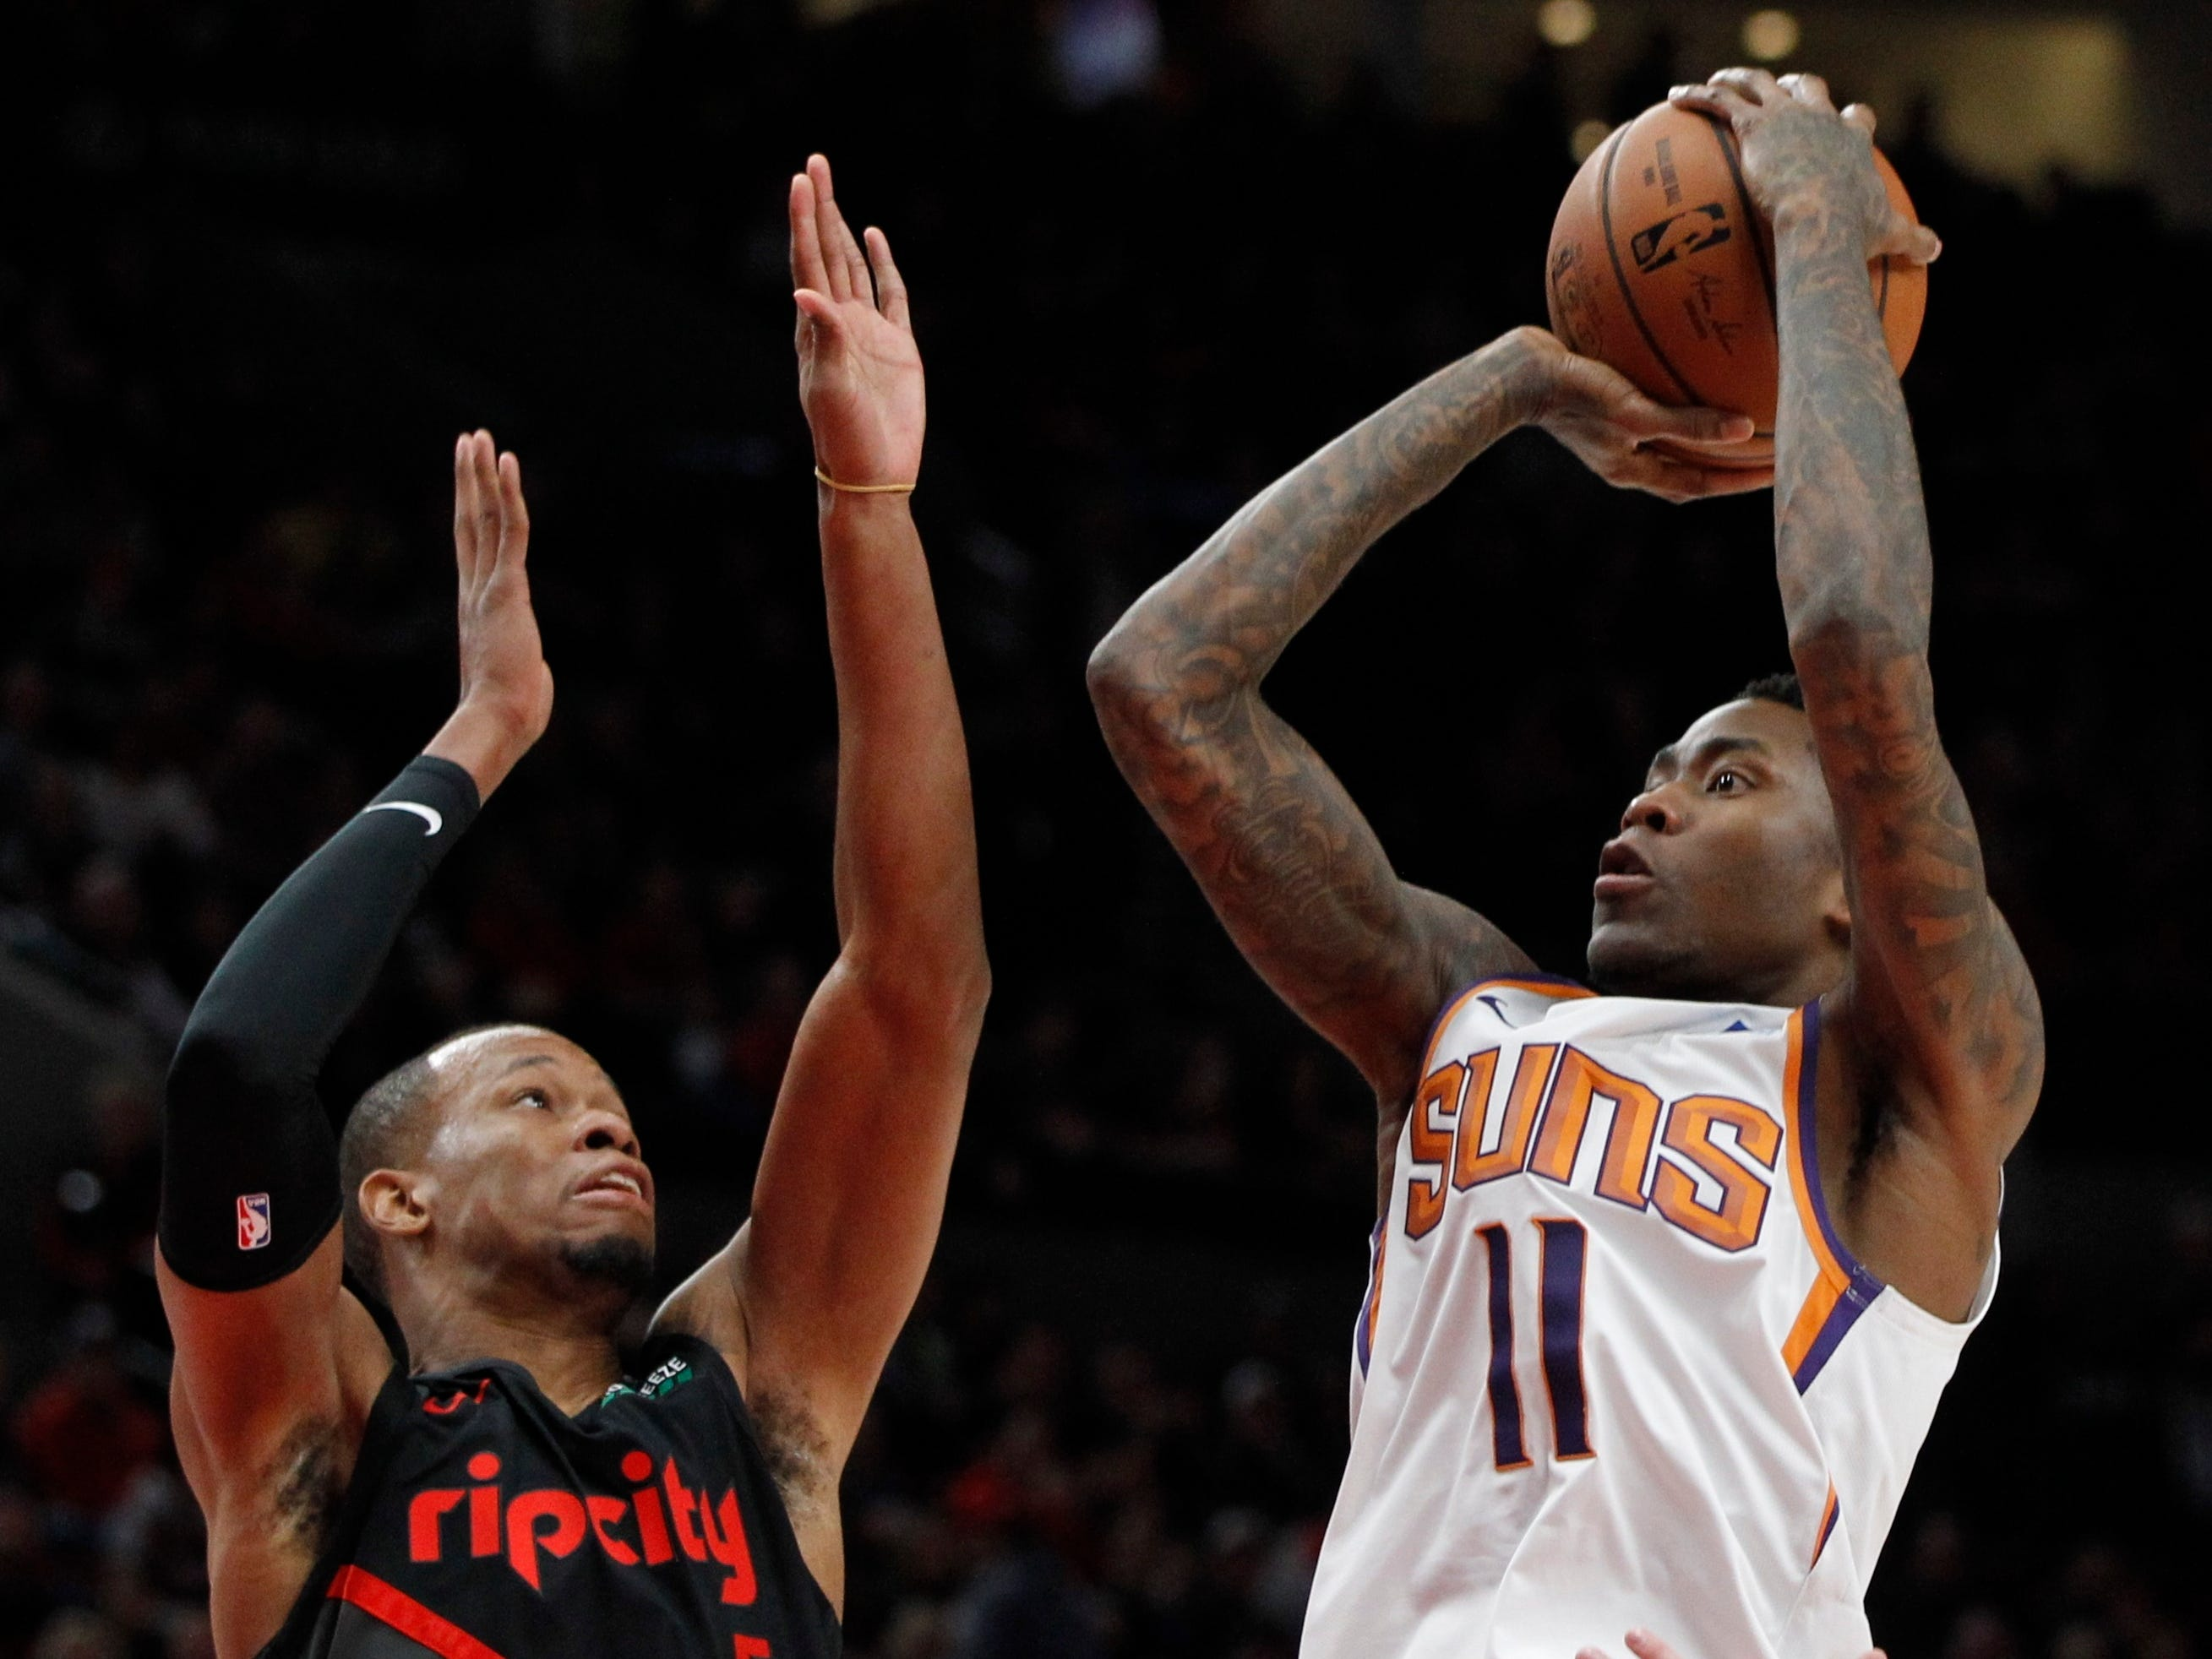 Phoenix Suns guard Jamal Crawford, right, shoots as Portland Trail Blazers guard Rodney Hood defends during the first half of an NBA basketball game in Portland, Ore., Saturday, March 9, 2019.